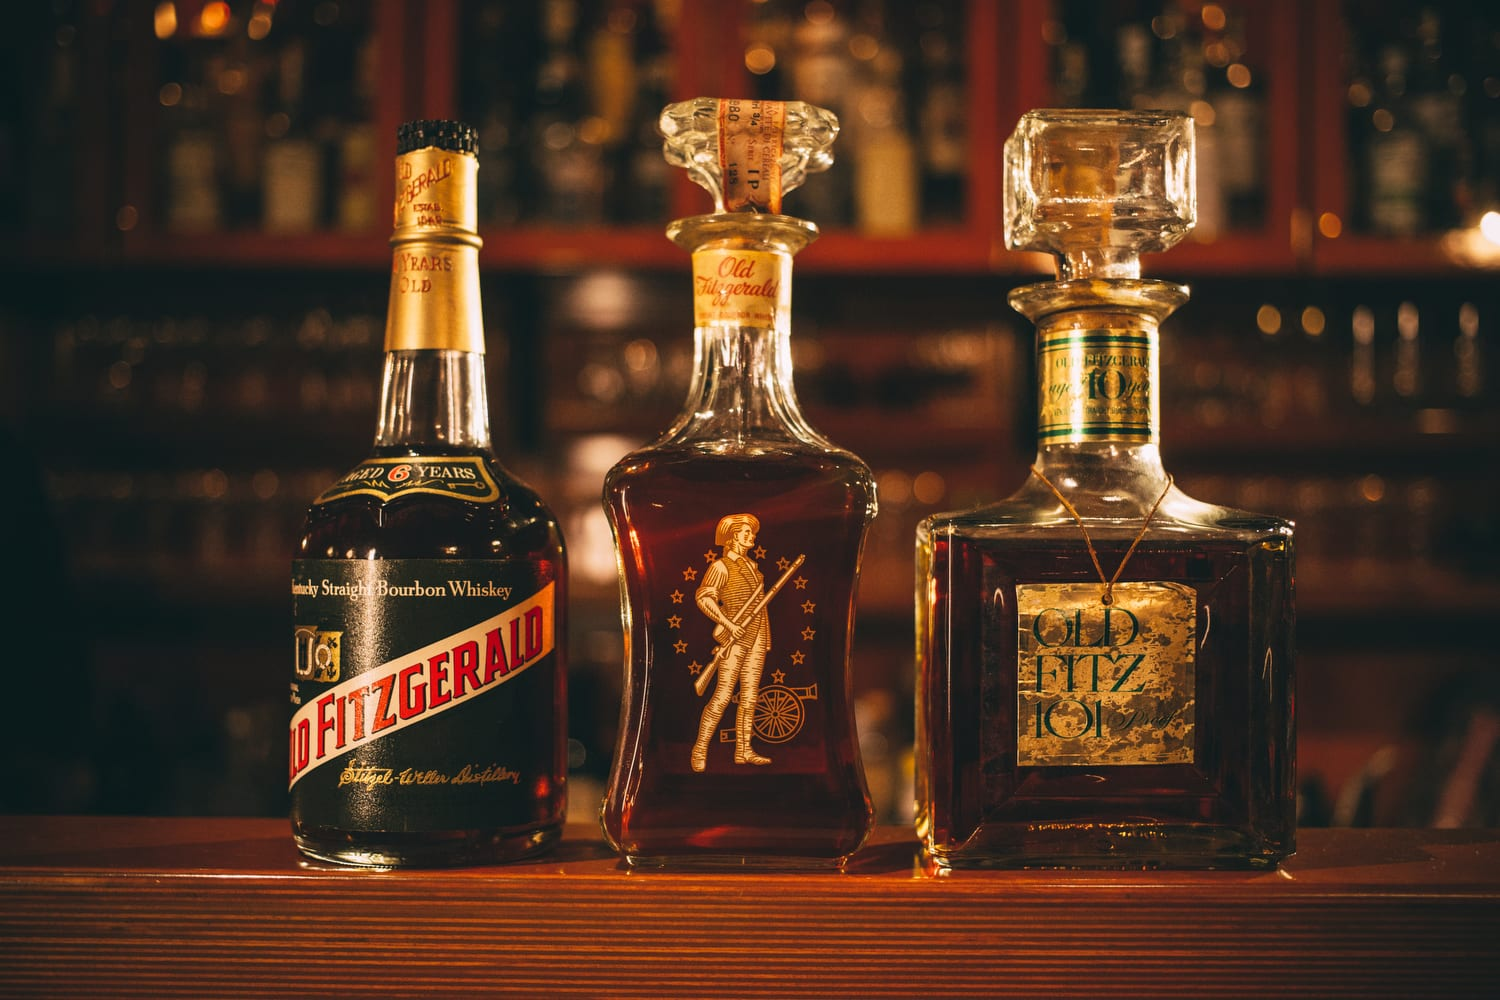 Rare and vintage spirits are the main draw for the bar.